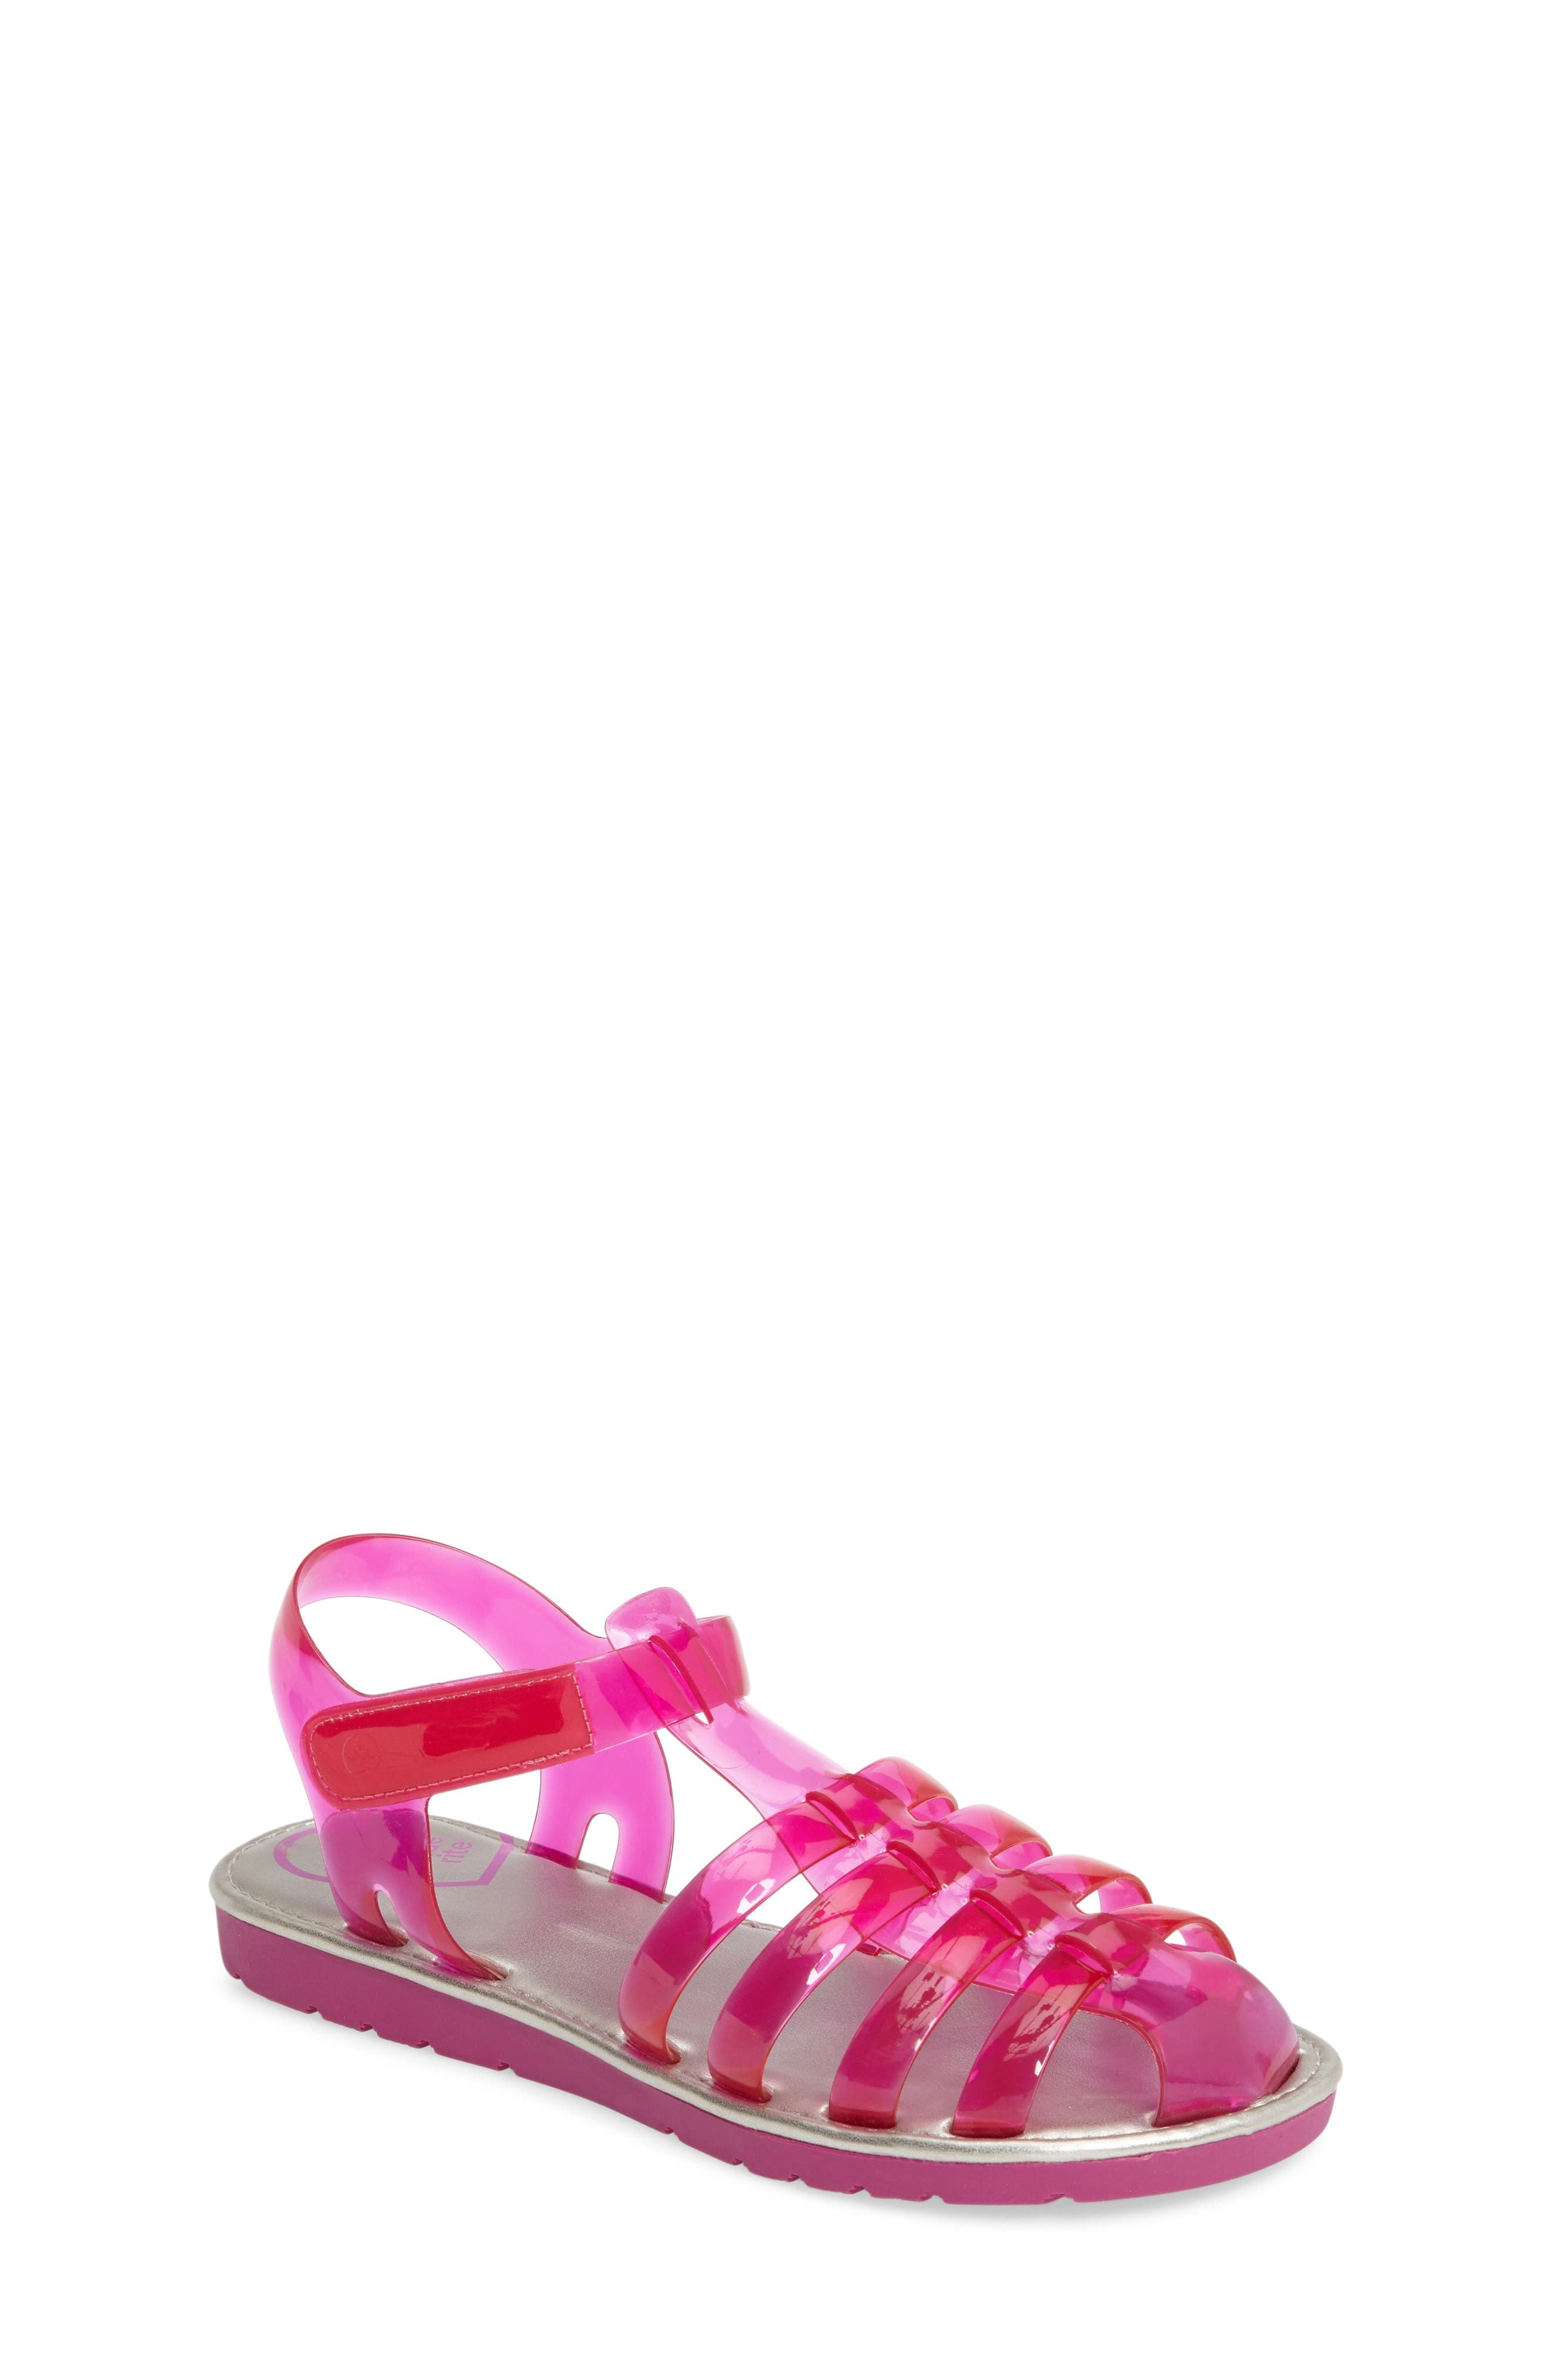 Natalie Jelly Sandal,                         Main,                         color, Magenta